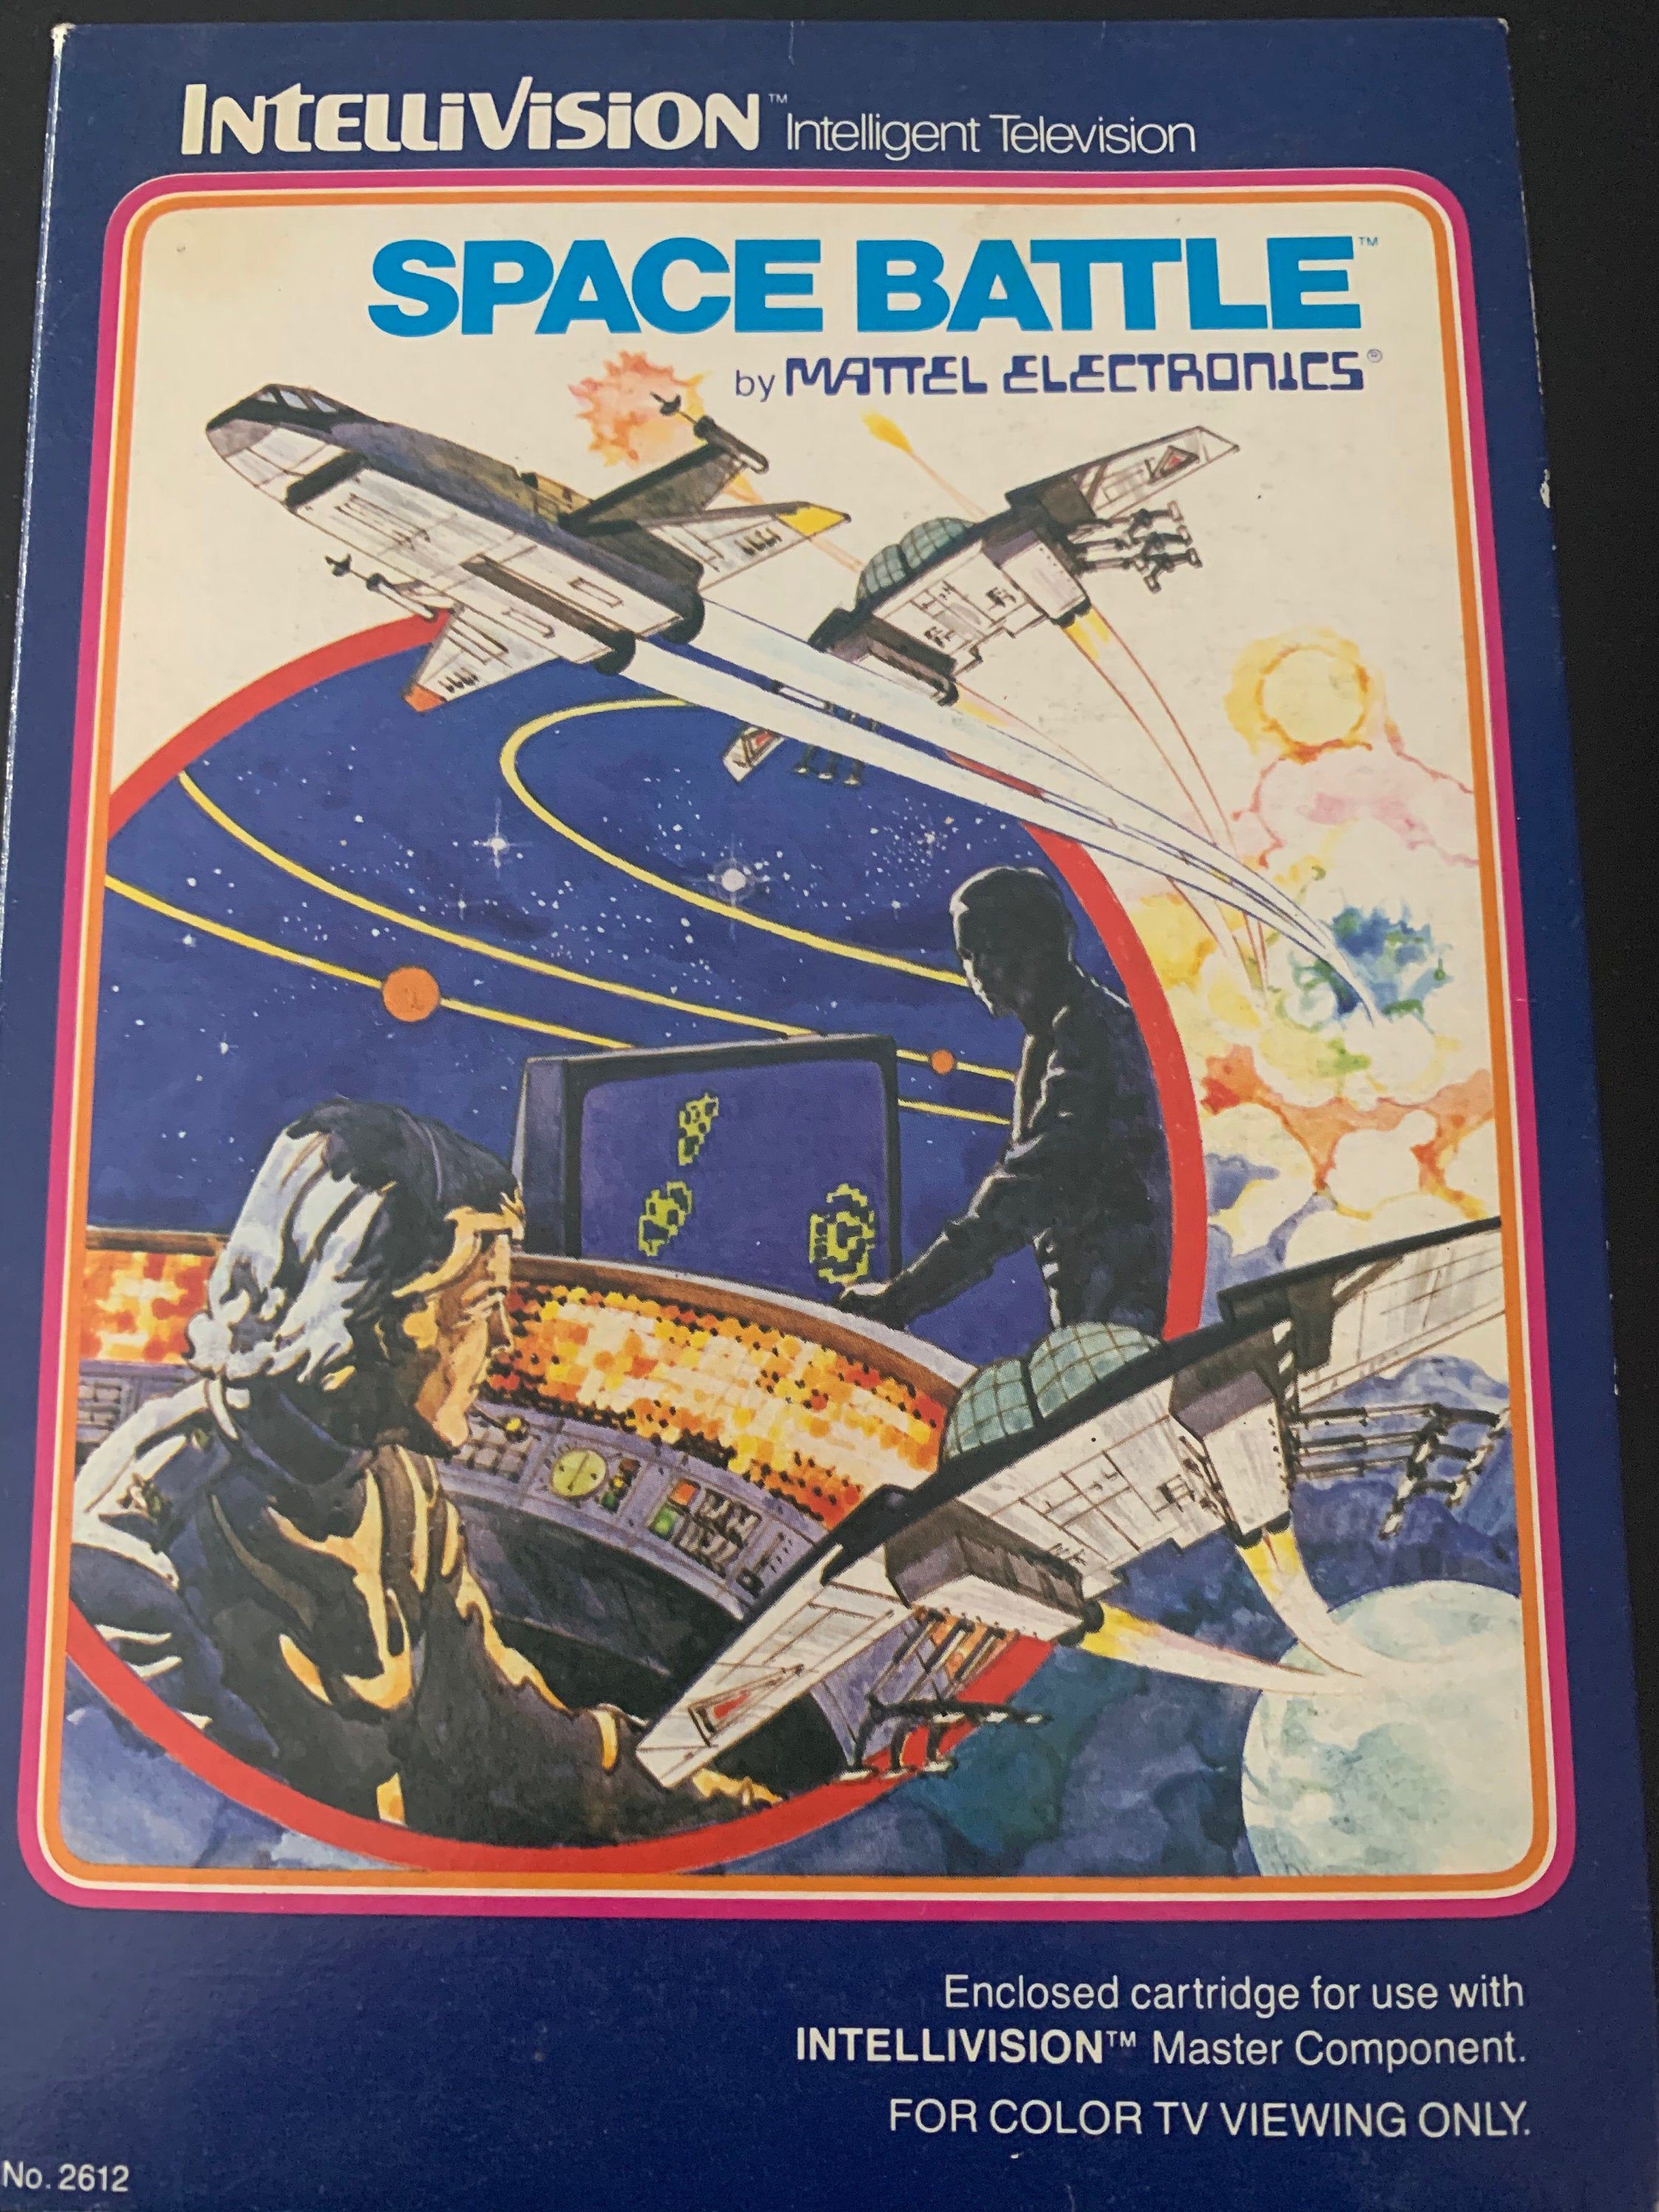 Intellivision Space Battle Video Game Space battles